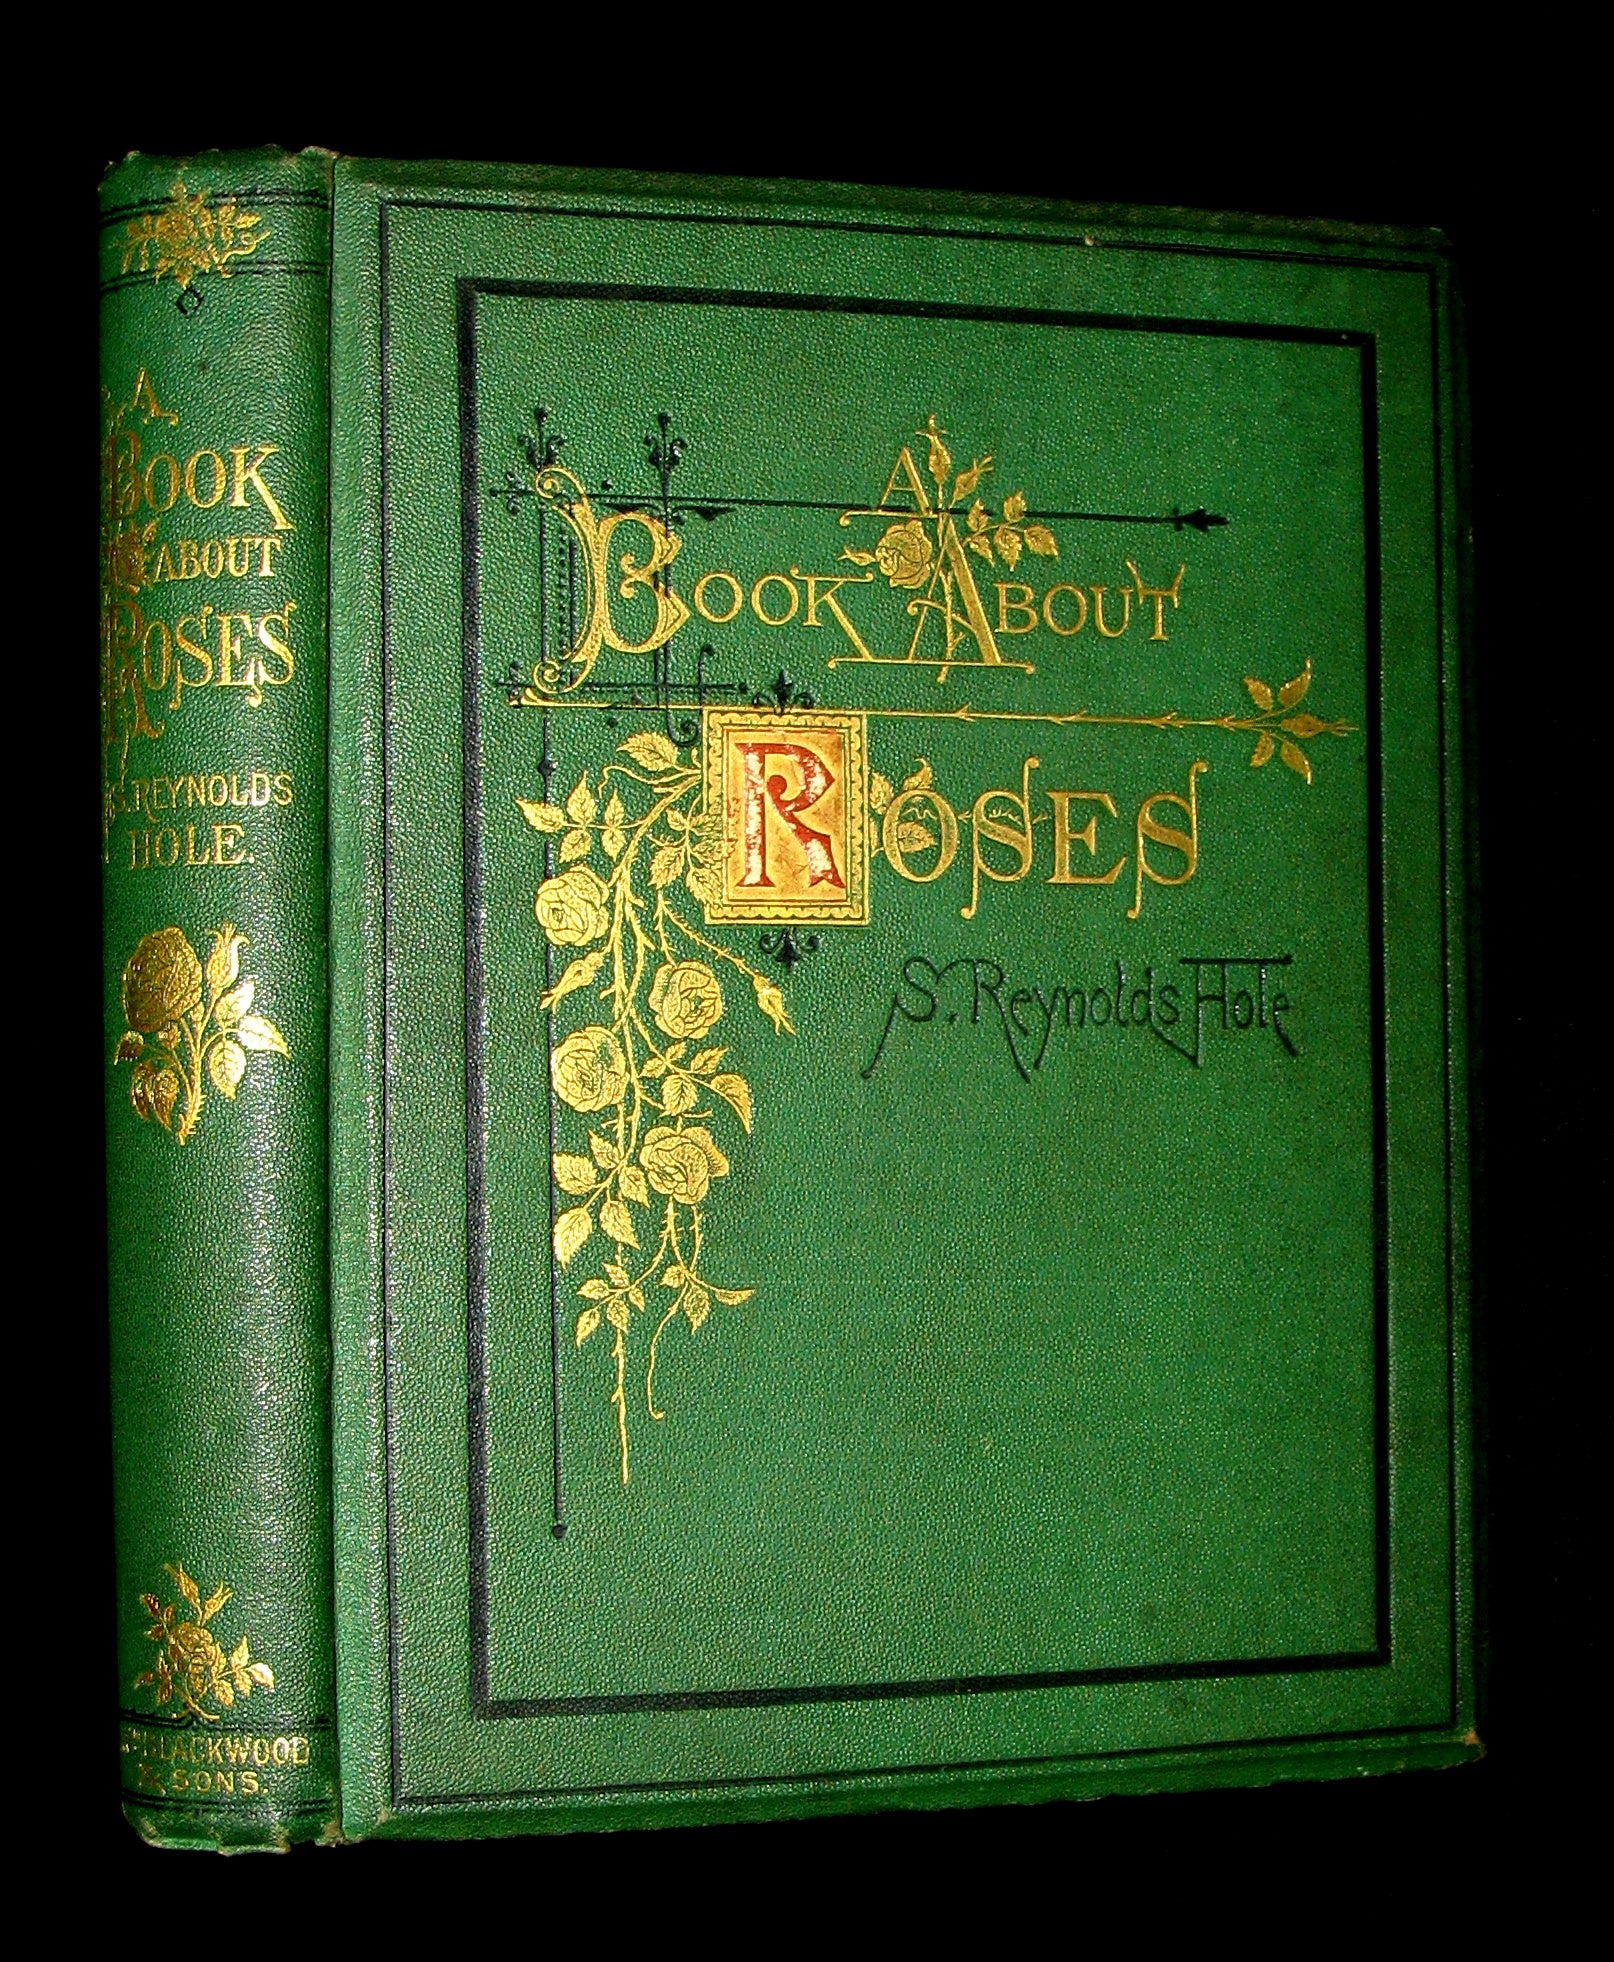 1870 Rare Victorian Gardening Book -  A book about Roses : How to grow and show them